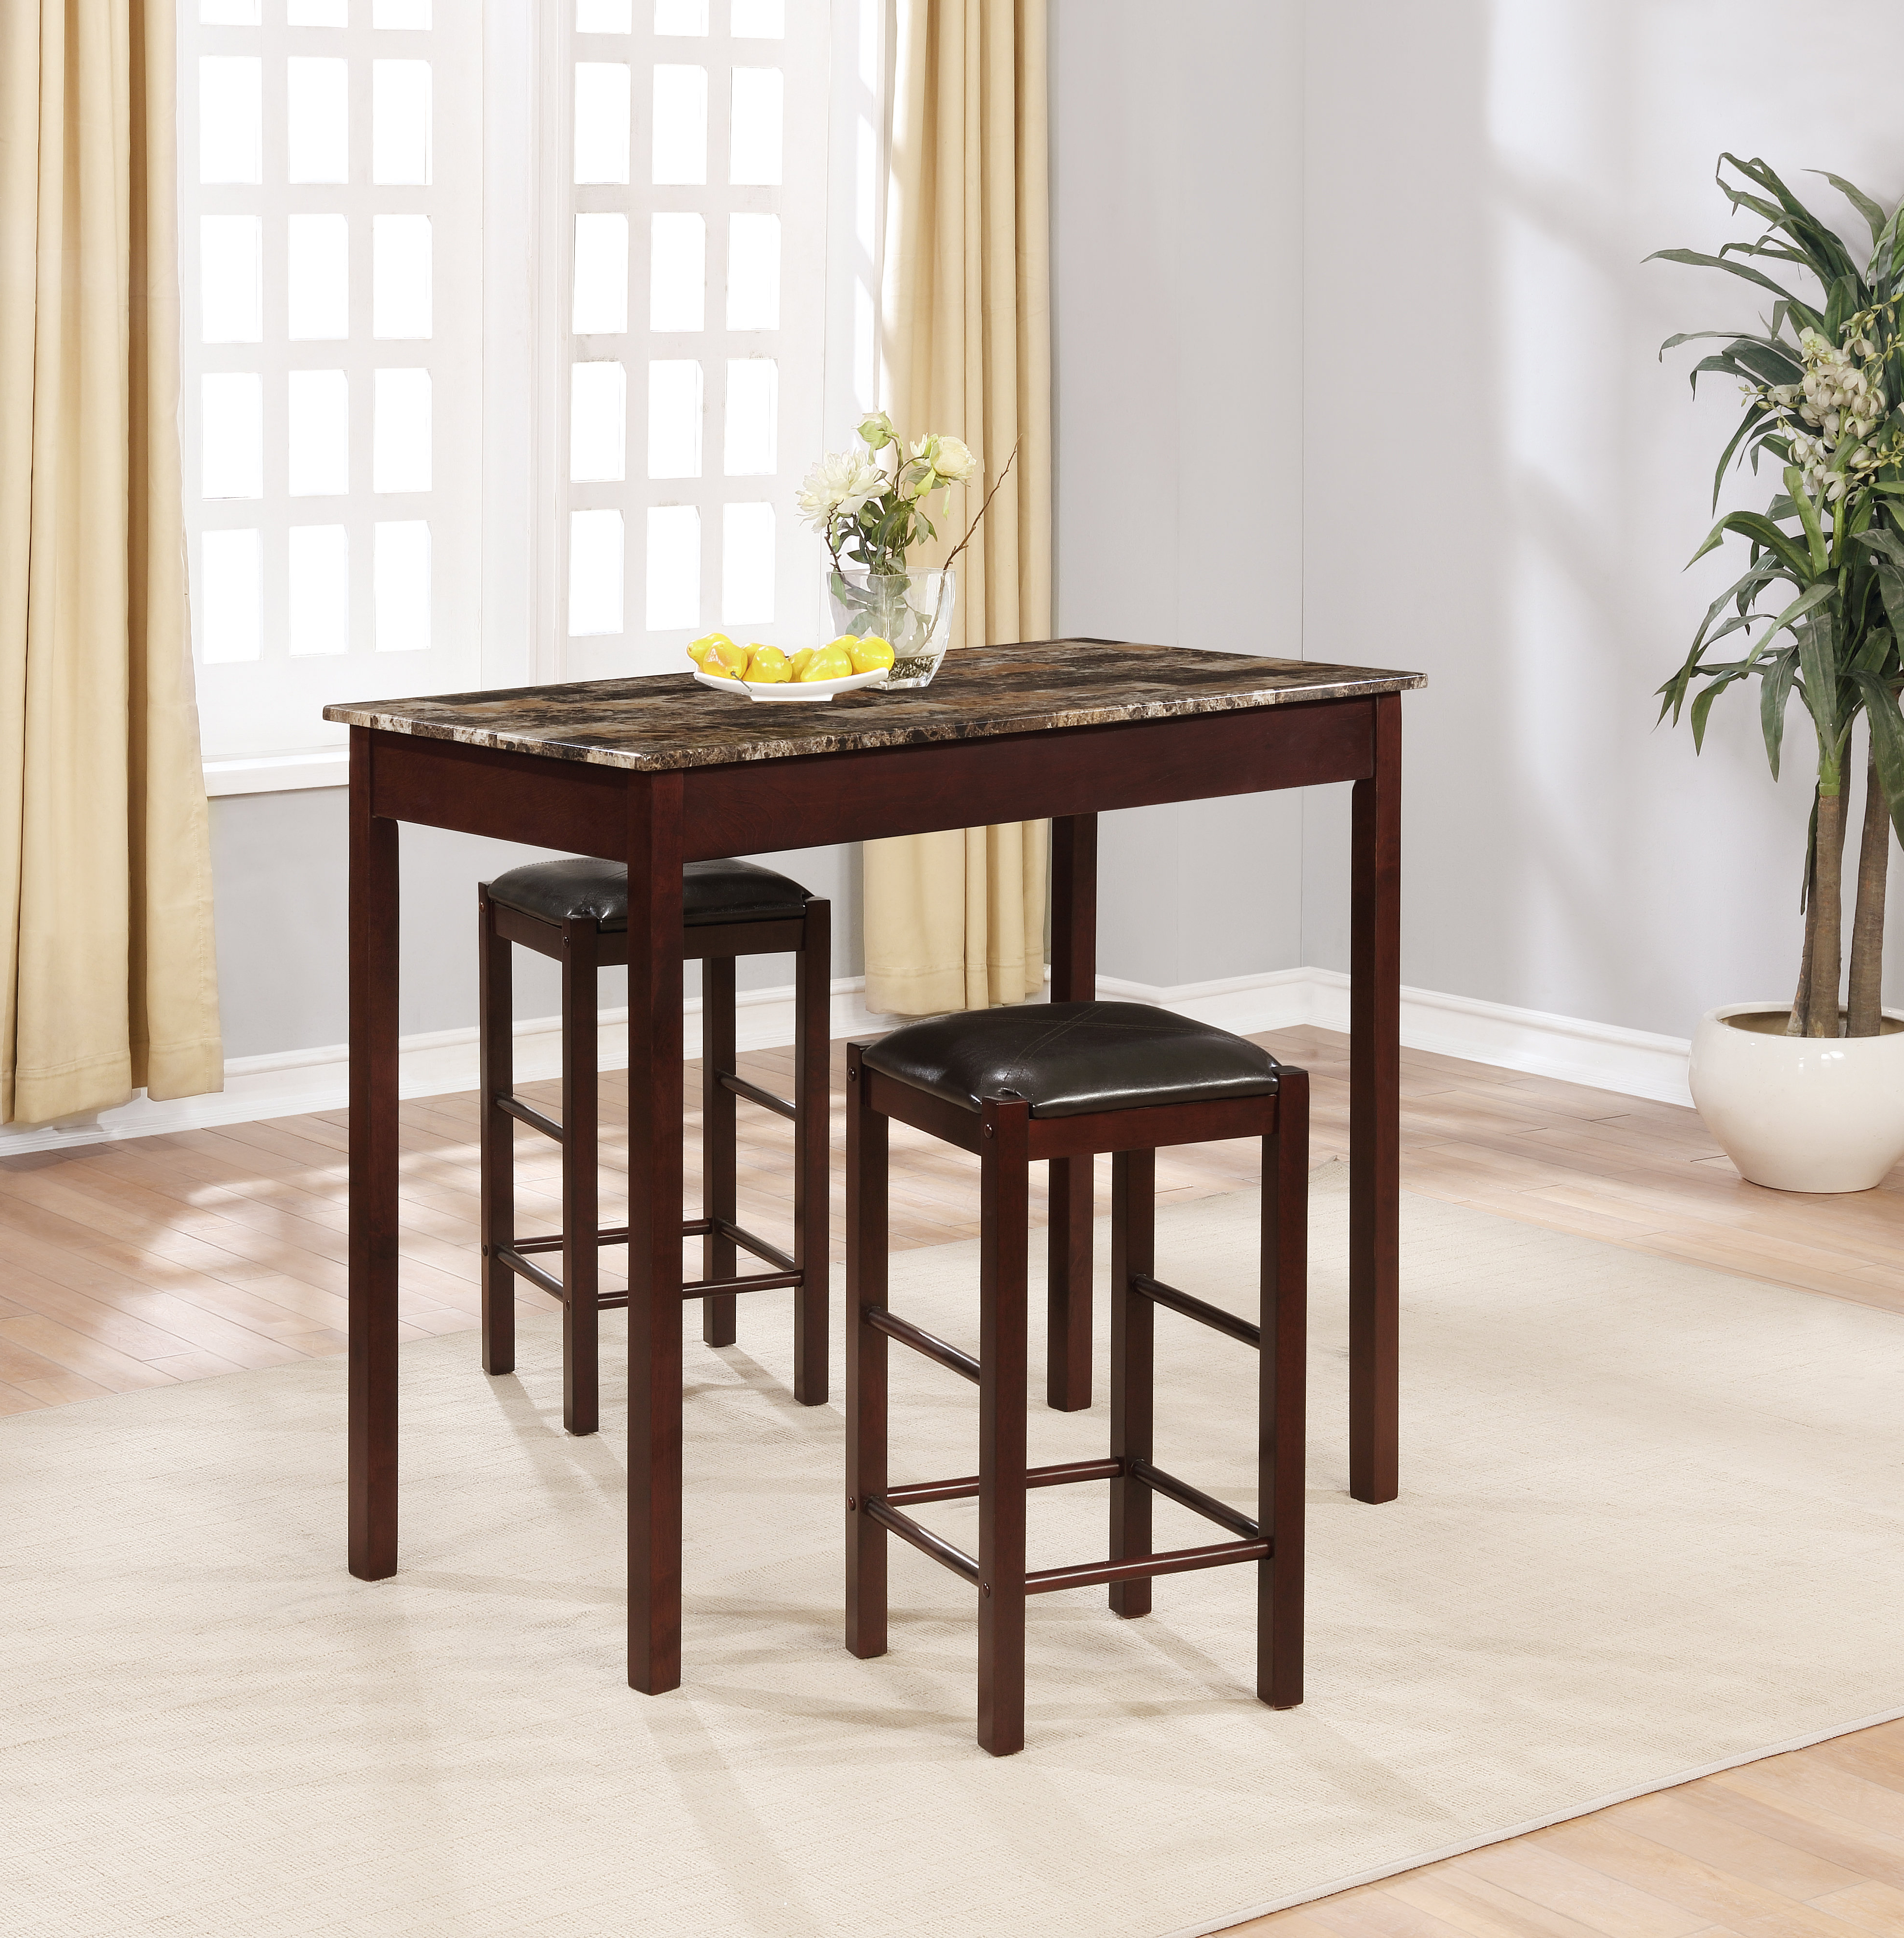 Sheetz 3 Piece Counter Height Dining Sets Within Fashionable Sheetz 3 Piece Counter Height Dining Set (View 3 of 25)